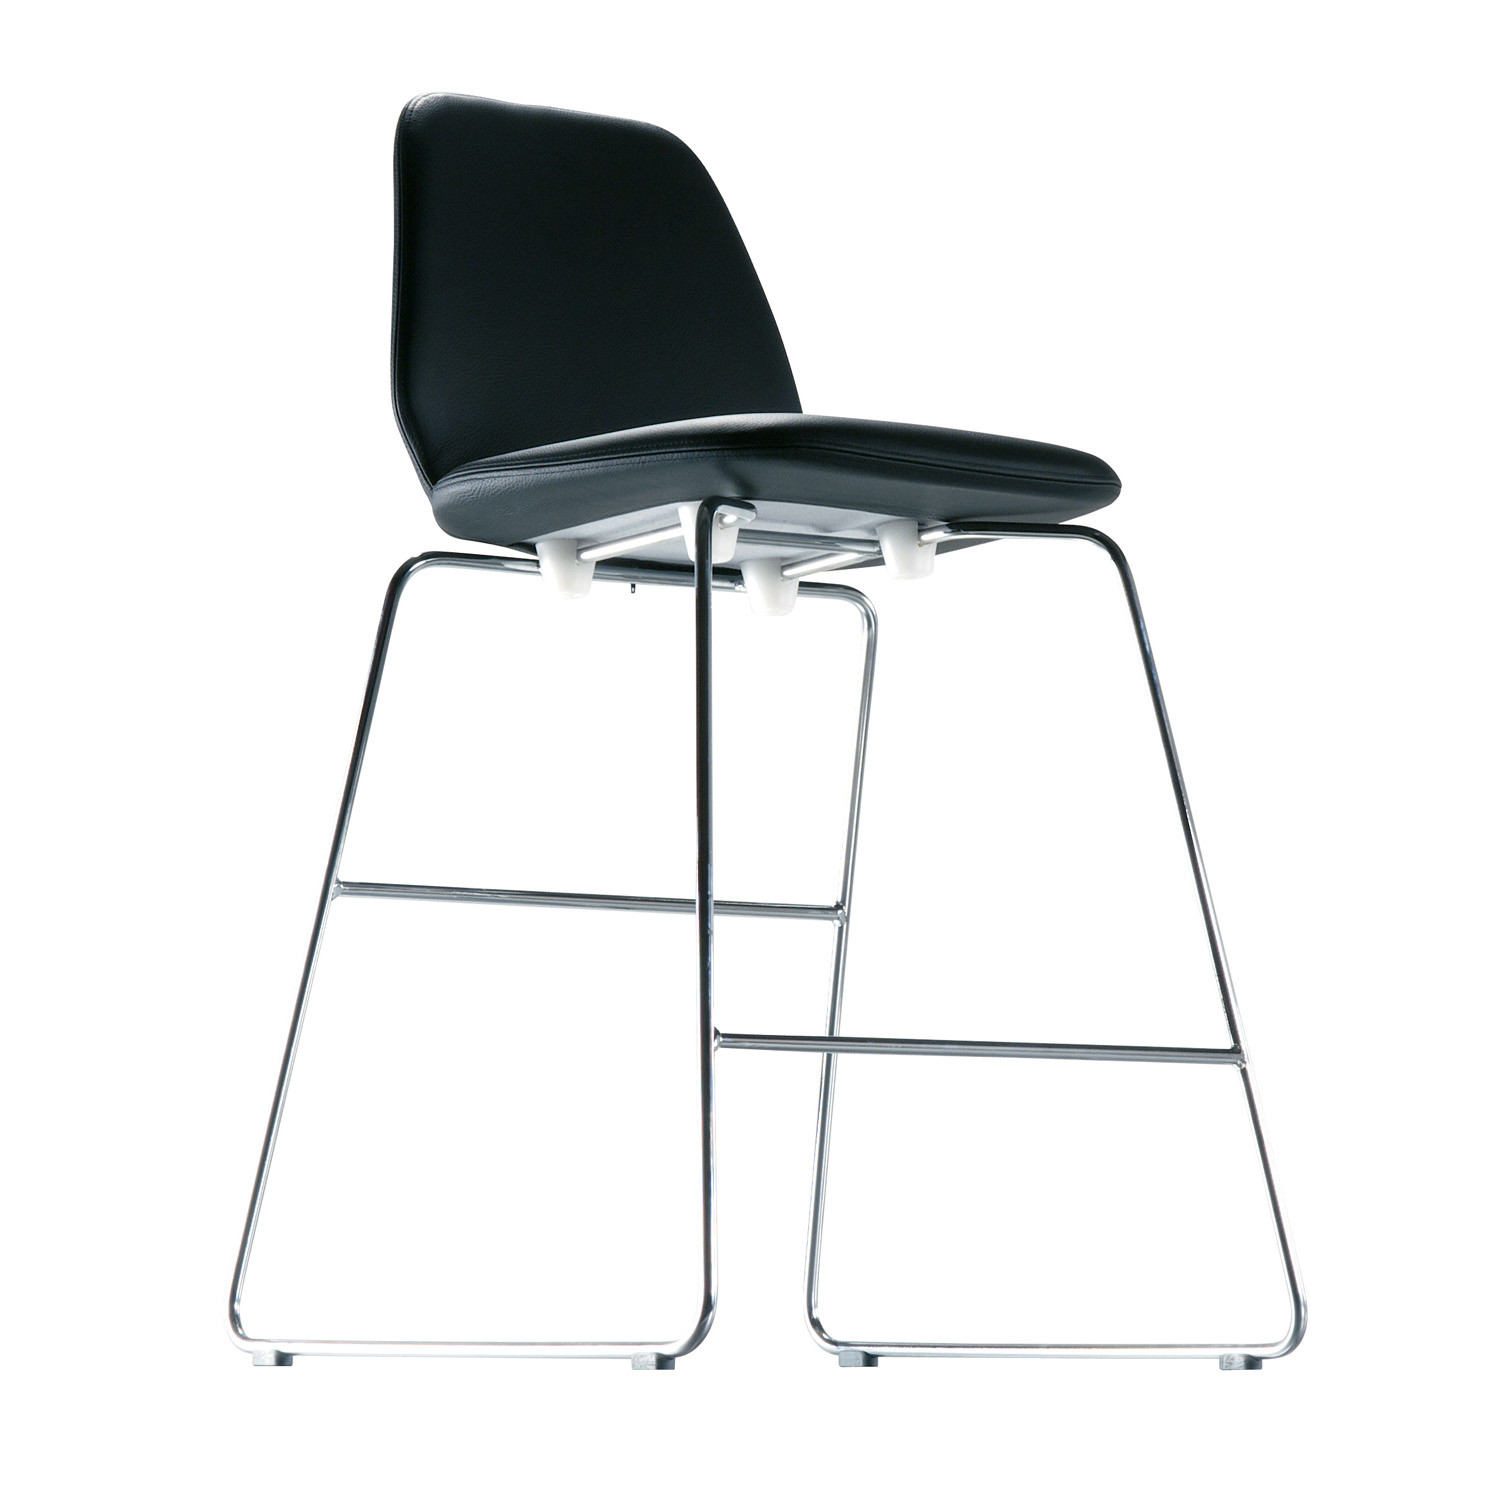 Tindari Stool - Medium and High Height available